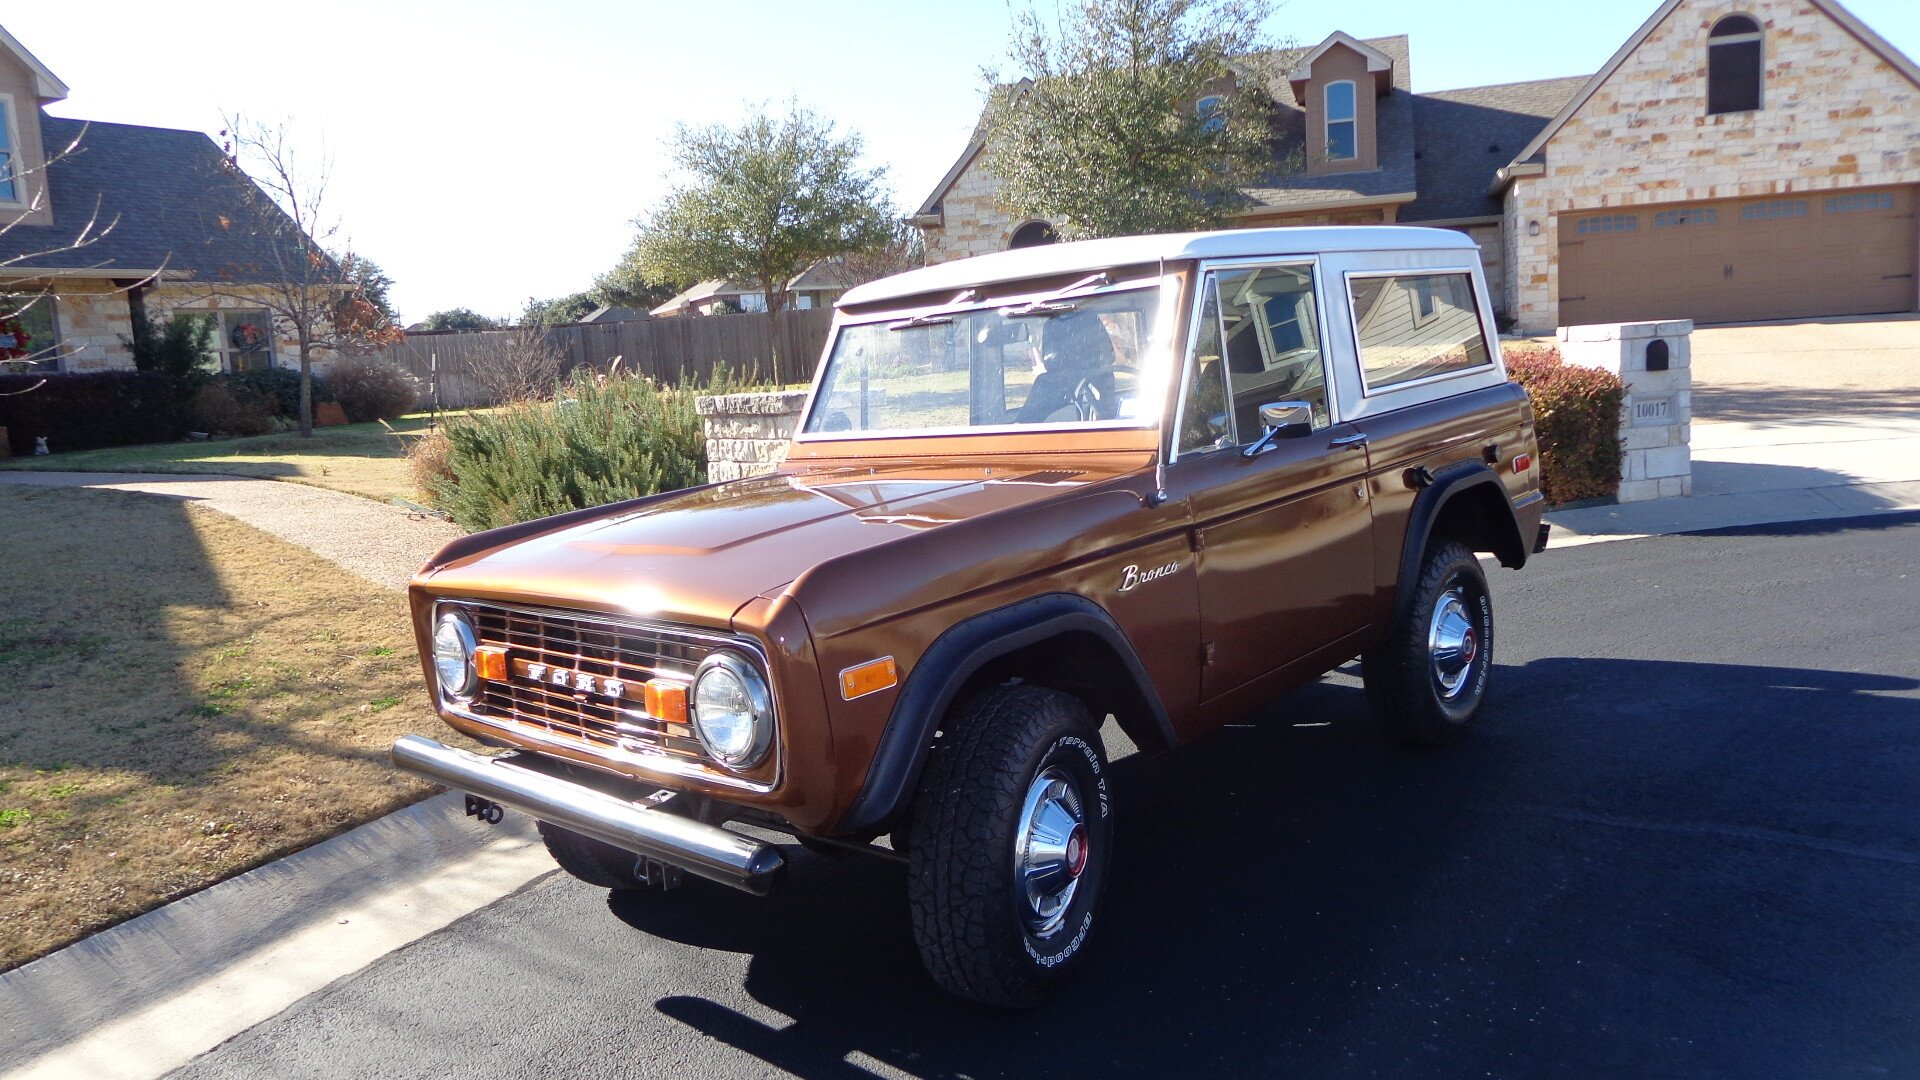 Used Cars Hattiesburg Ms >> 1975 Ford Bronco Classics for Sale - Classics on Autotrader